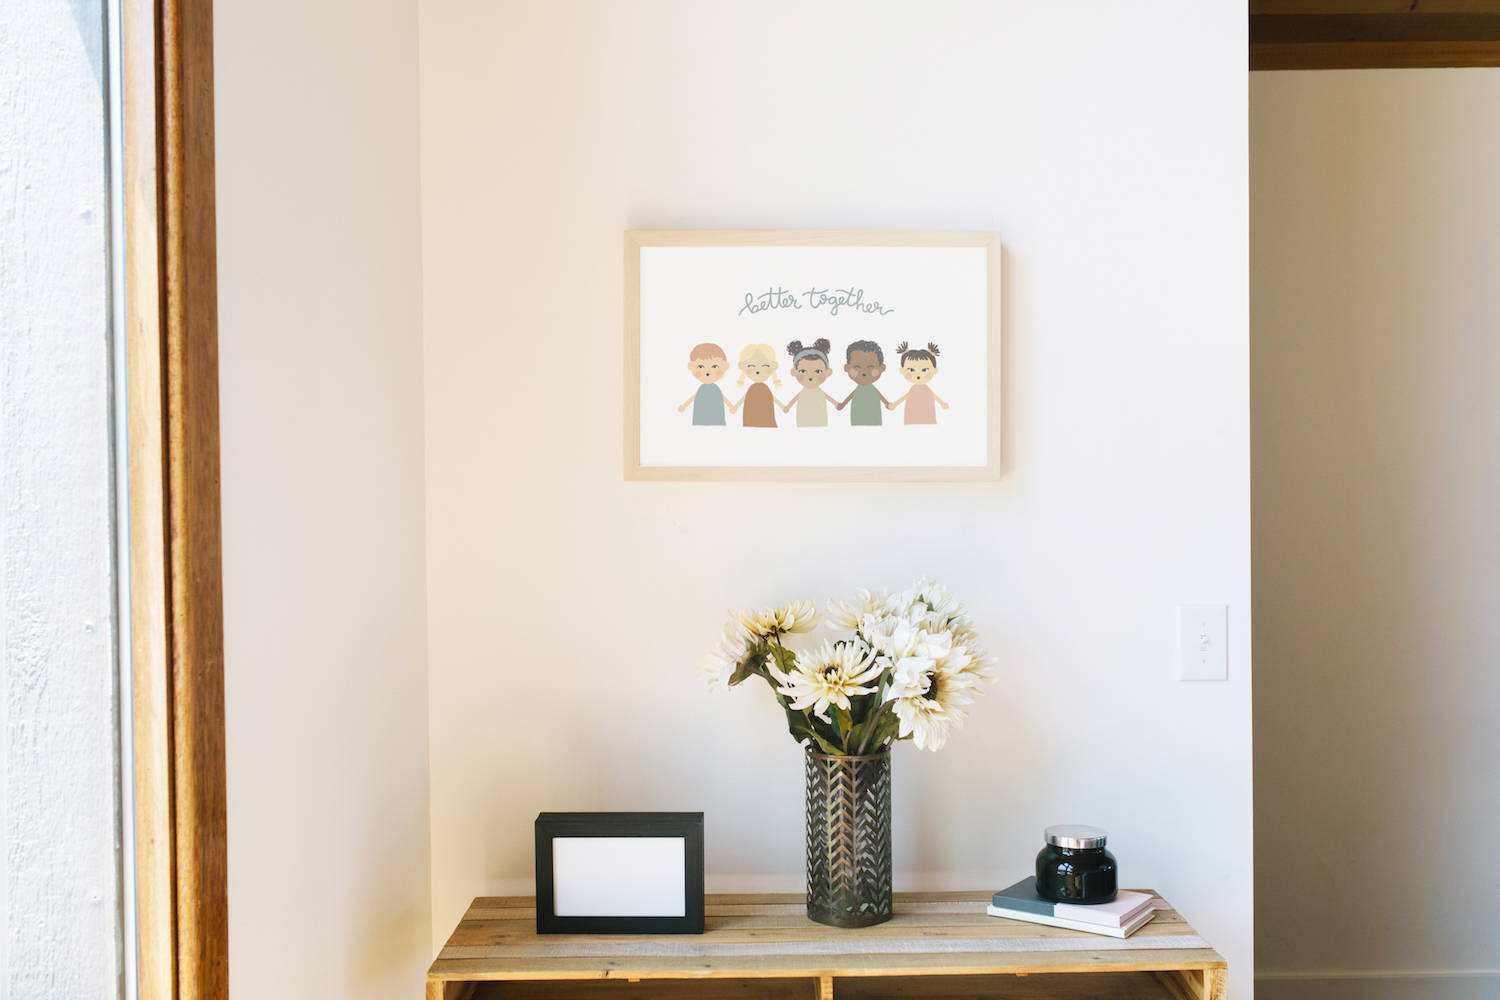 frame hanging on wall above bed